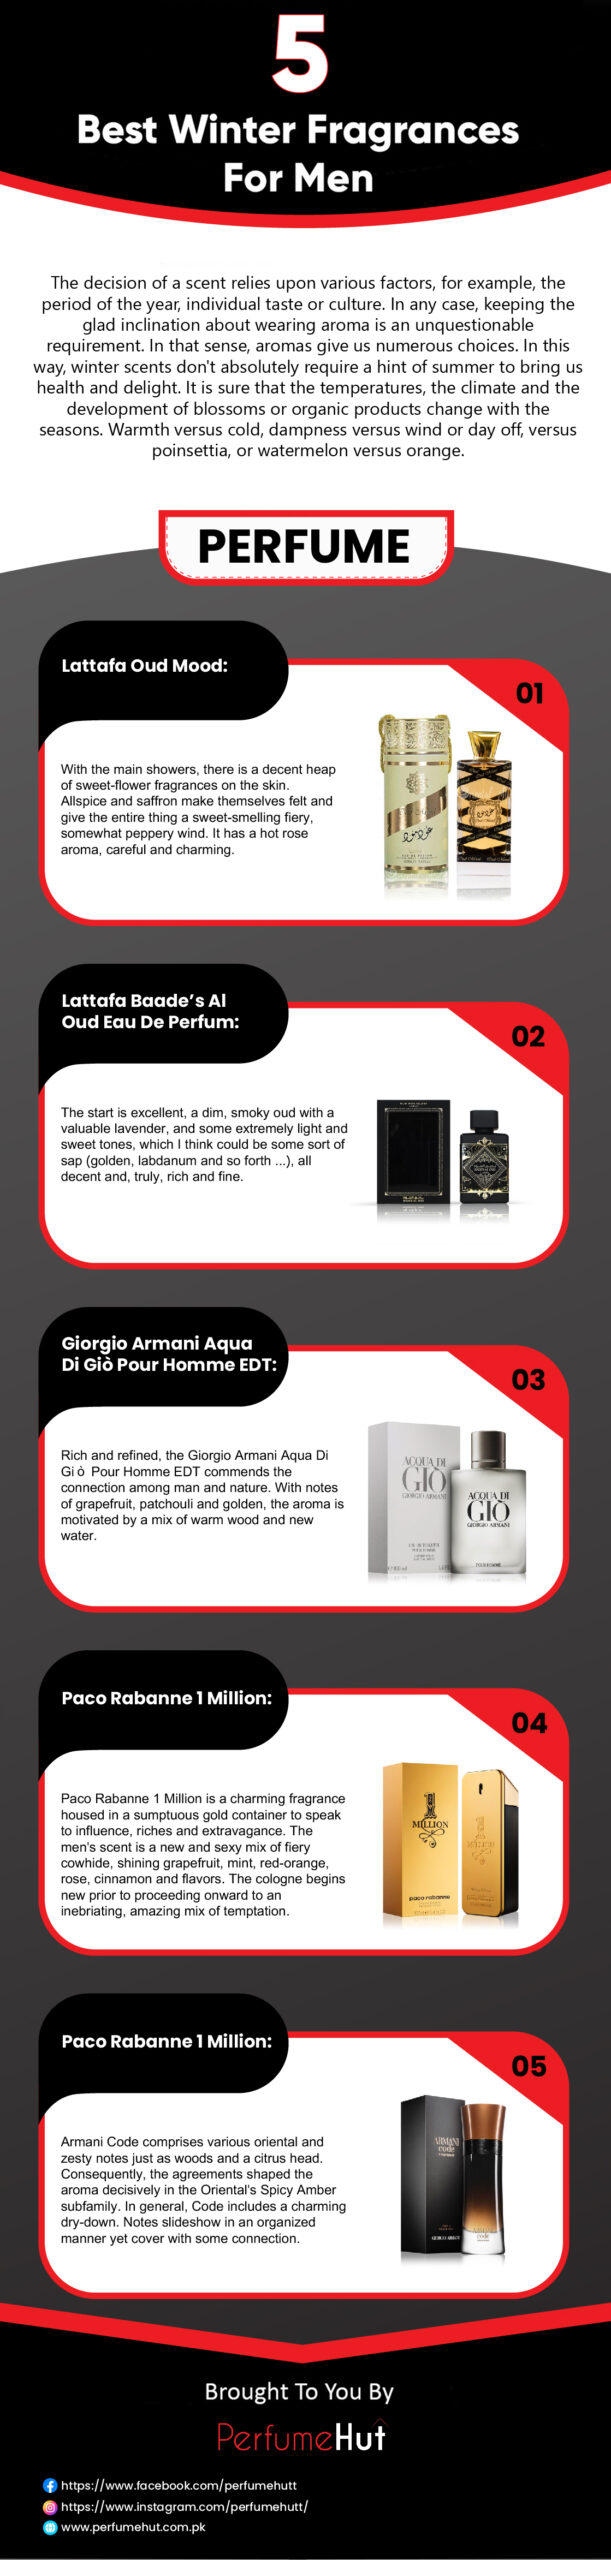 Top 5 best winter perfumes for men